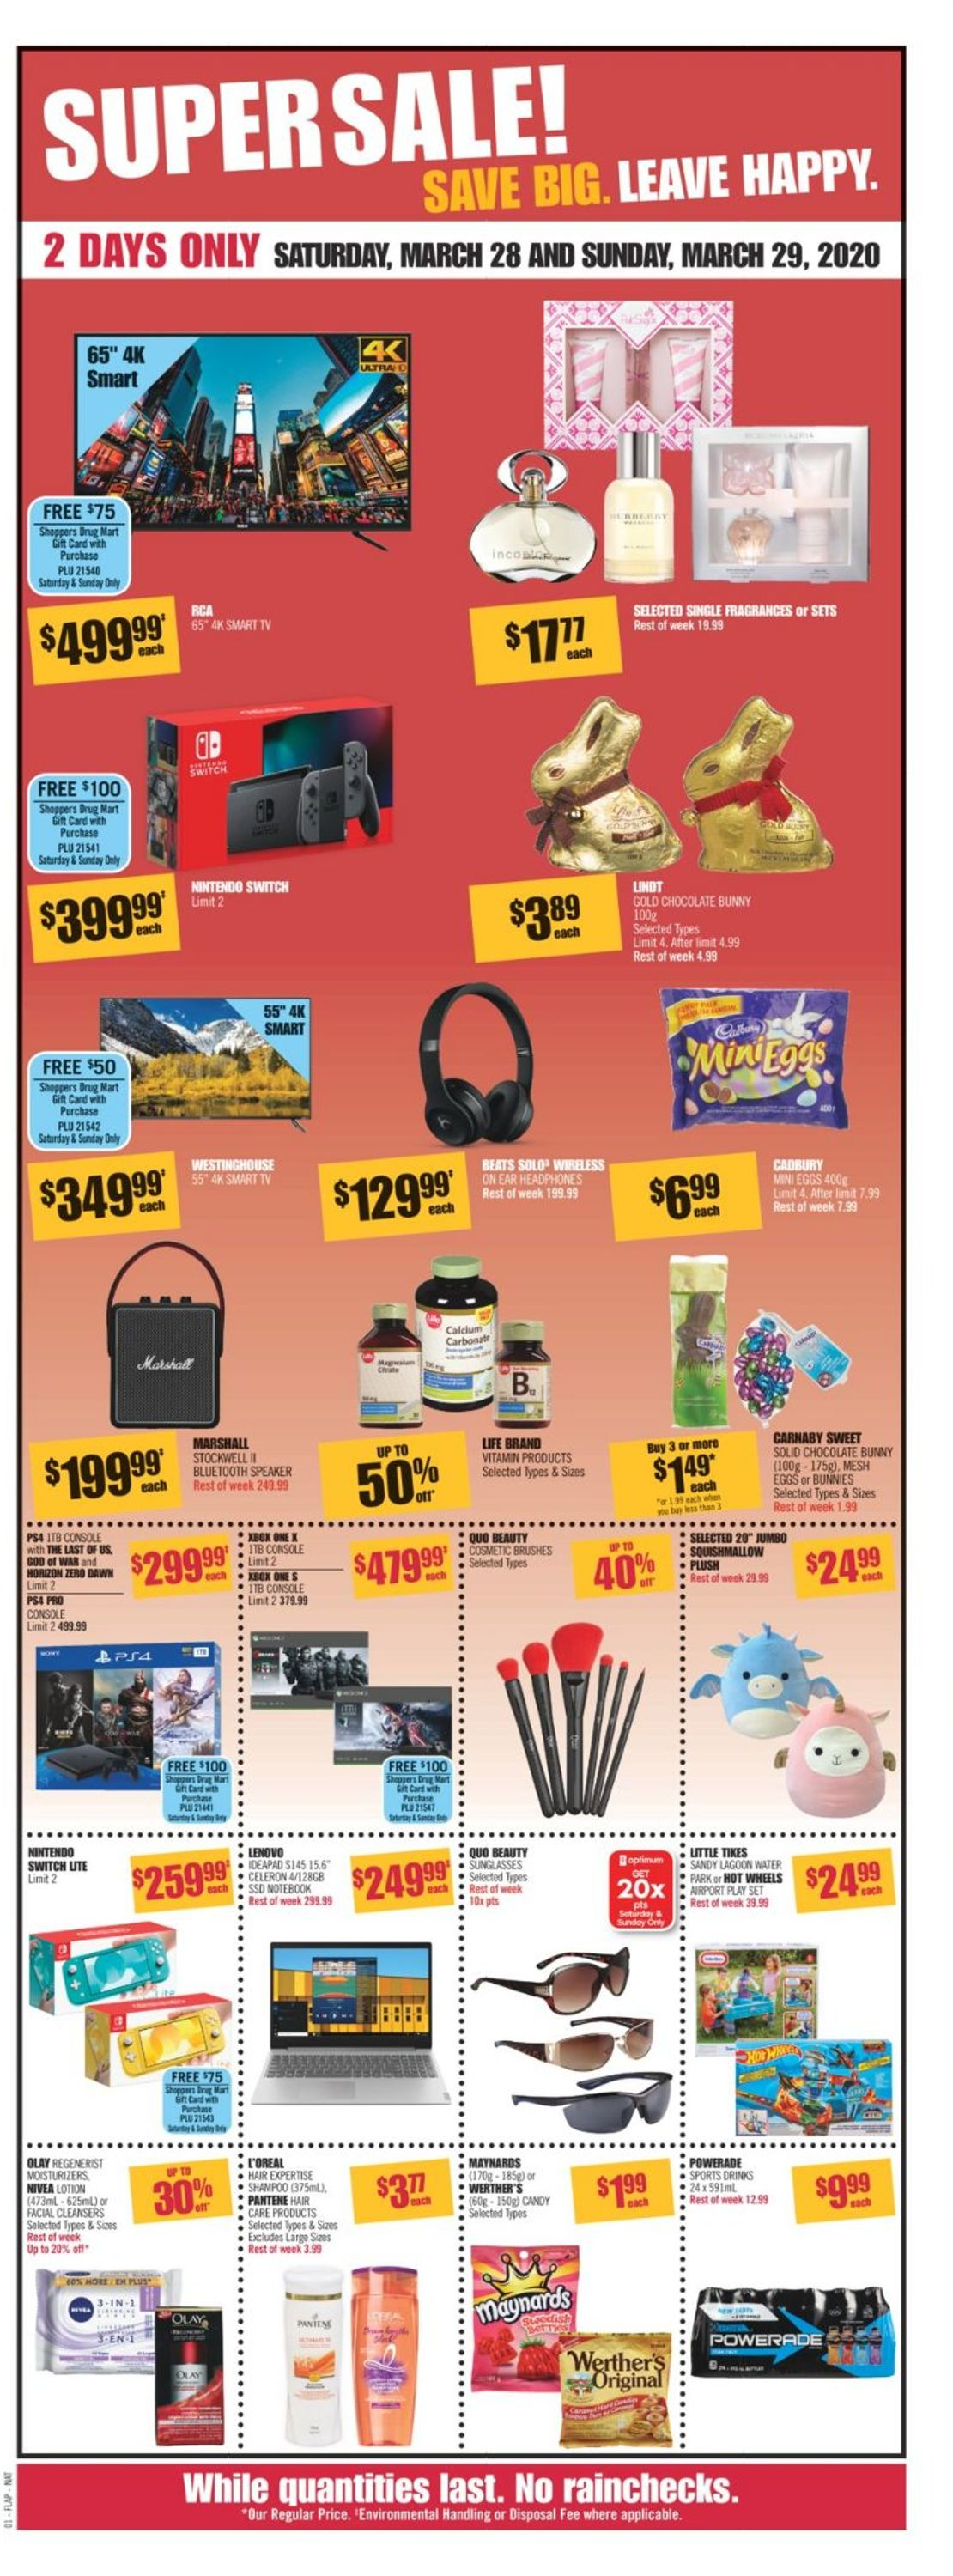 Pharmaprix Flyer - 03/28-04/03/2020